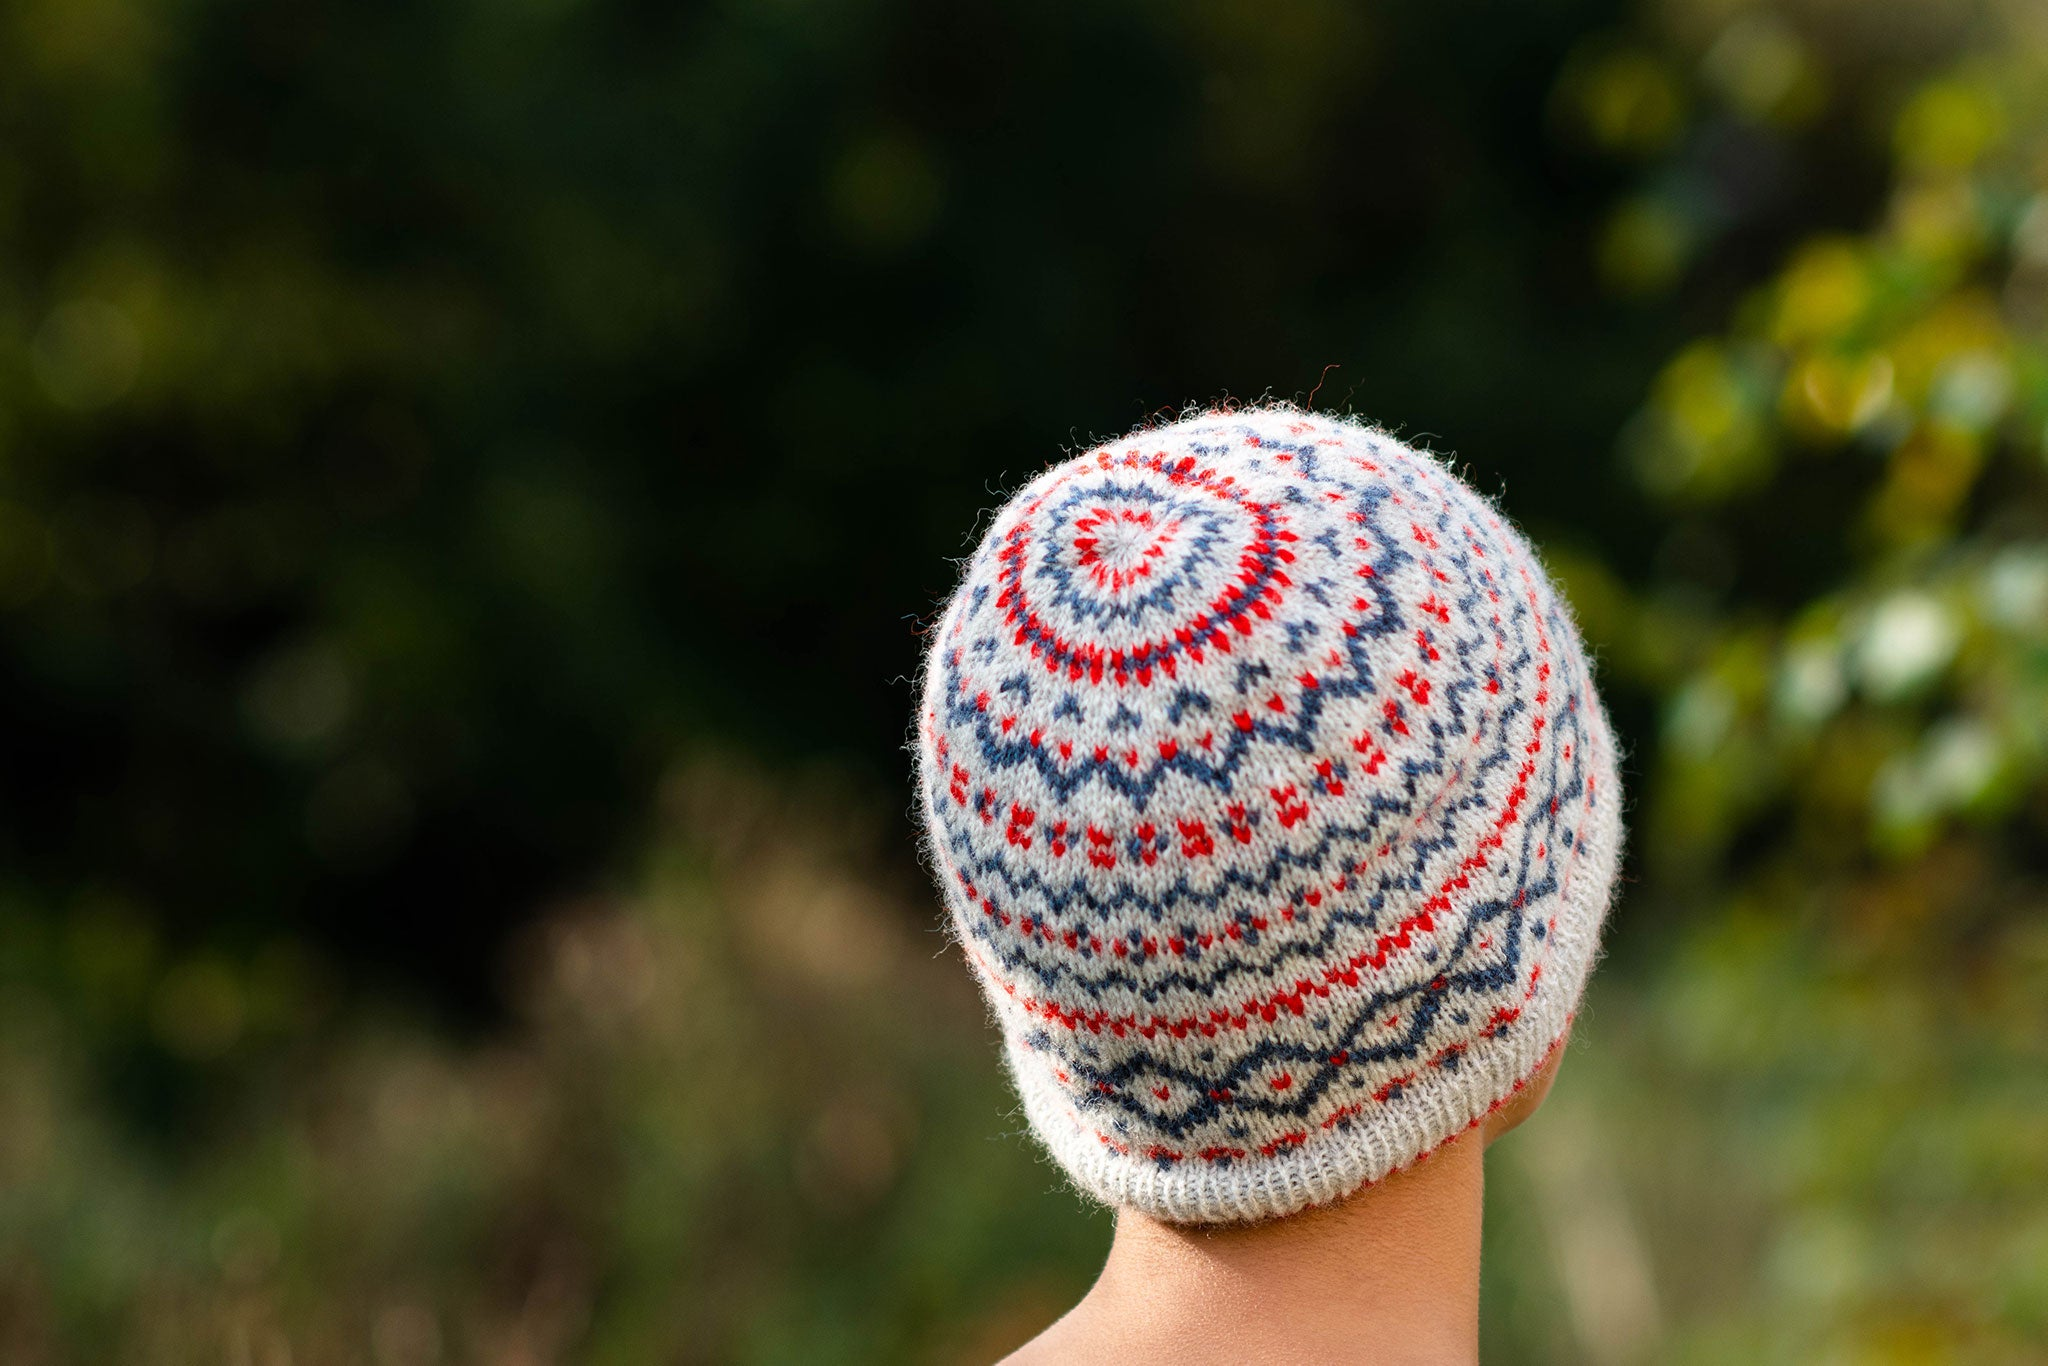 A model stands outdoors wearing a colorwork hat. Only the back of the teal, red and cream hat is visible and the background is blurred green.